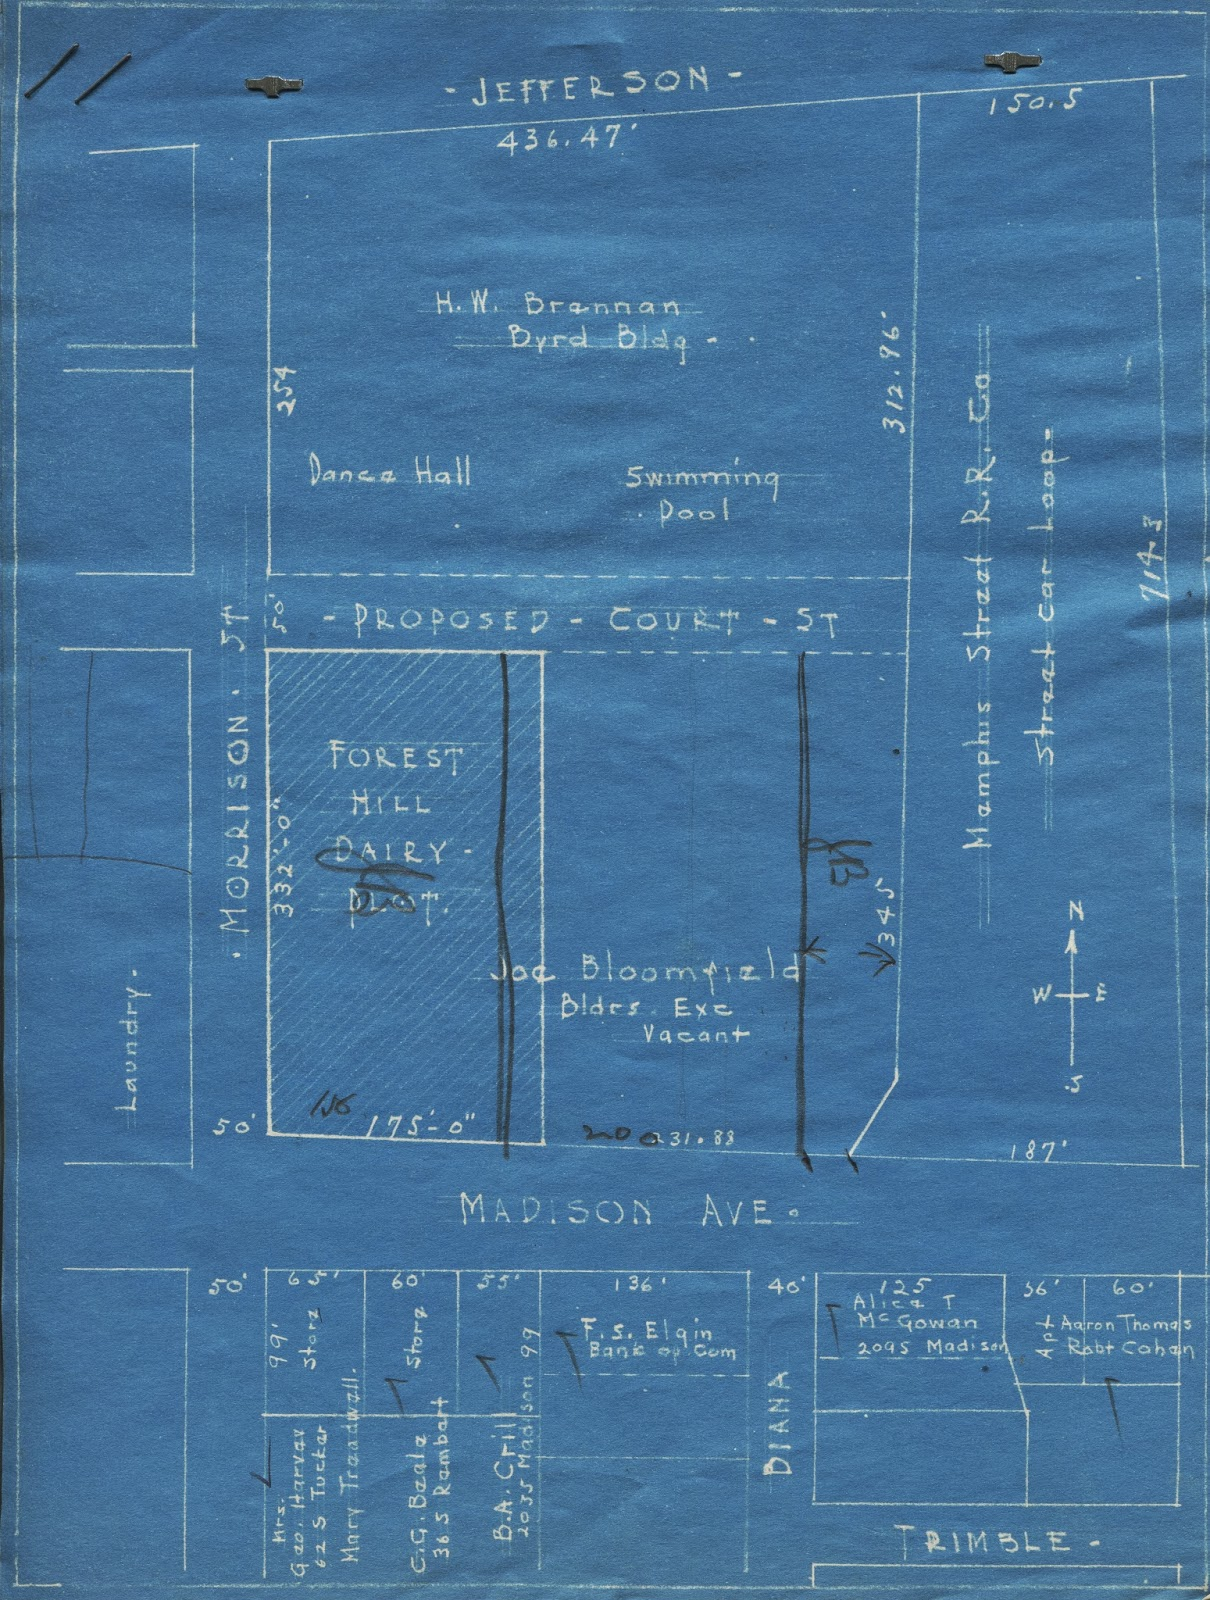 this vicinity map shows various property owners of land now occupied by forest hill prairie farm the forest hill dairy plot is now the parking lot for